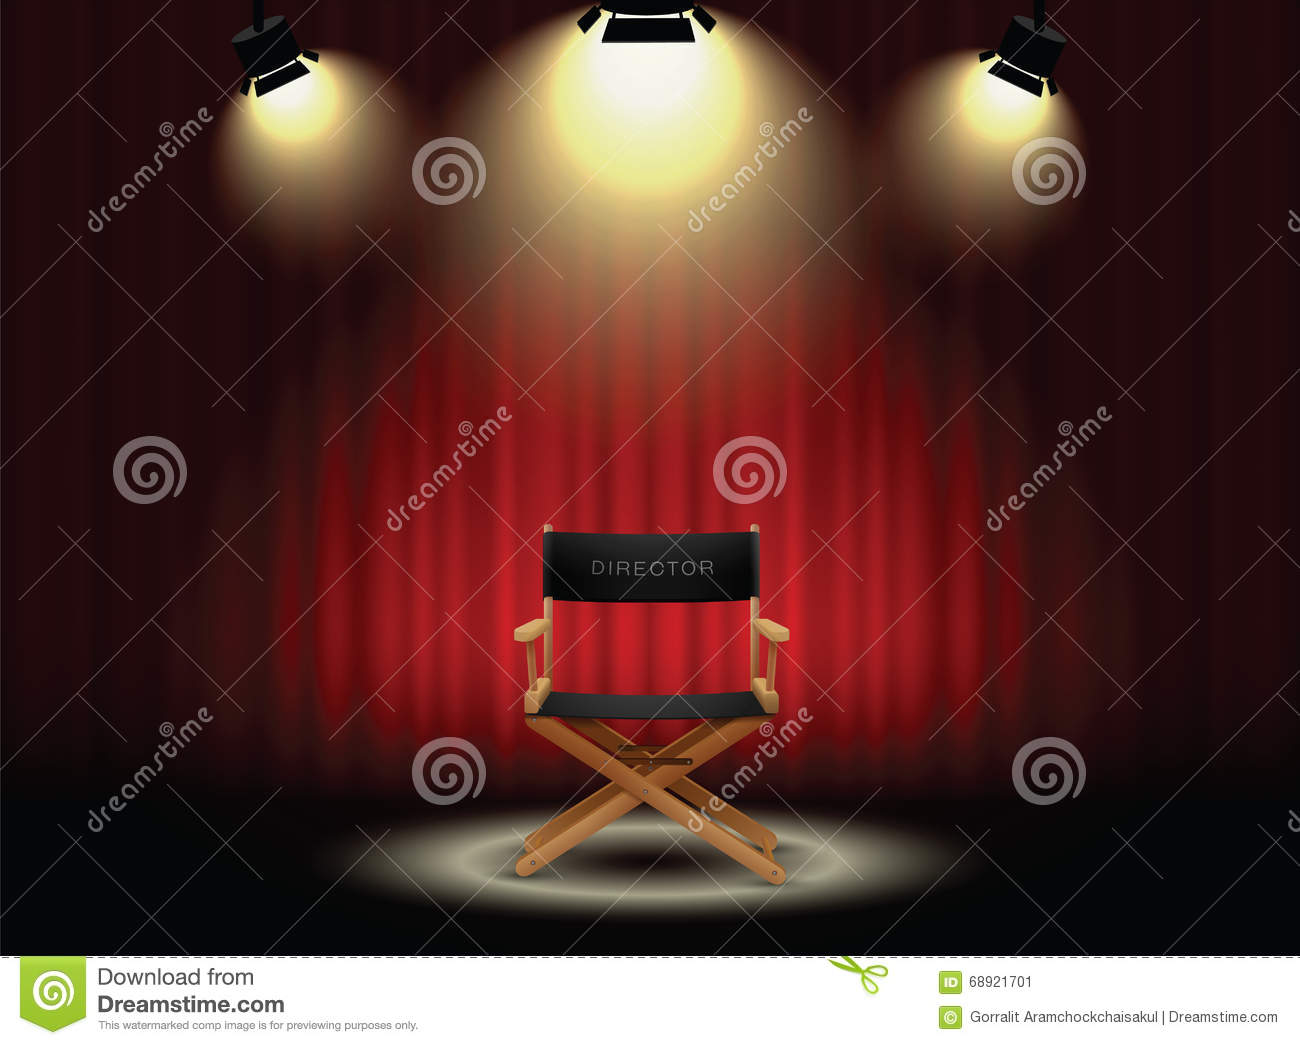 Theater curtains download free vector art stock graphics amp images - Background Curtain And Director S Chair With Spotlight Stock Vector